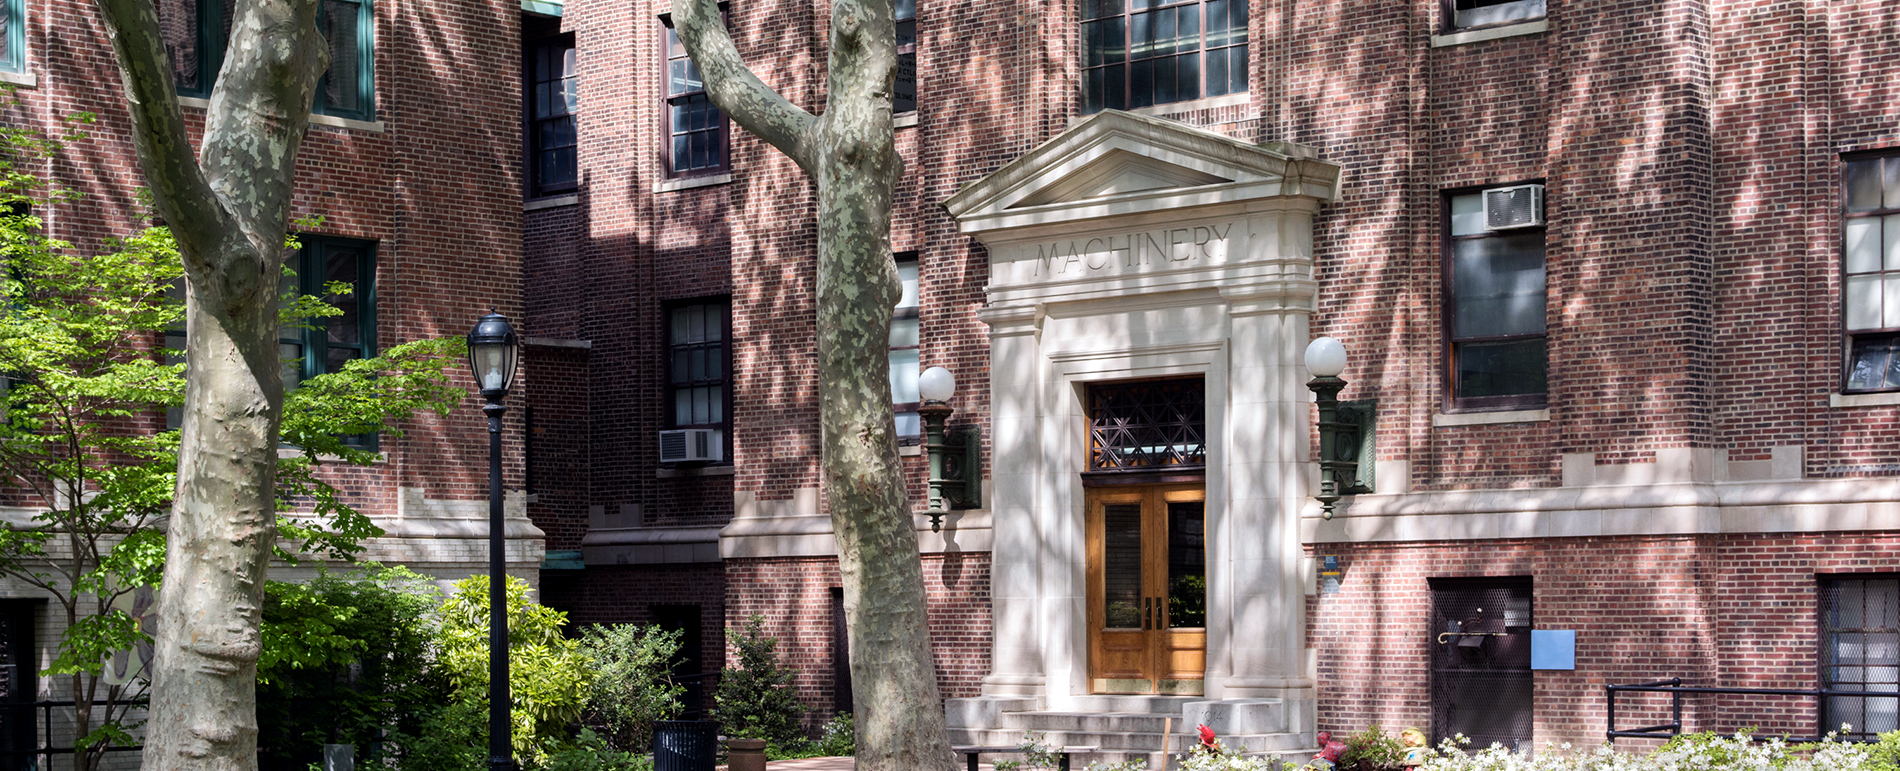 DesignIntelligence Ranks Pratt Institute Among Top 10 For Interior Design  Programs